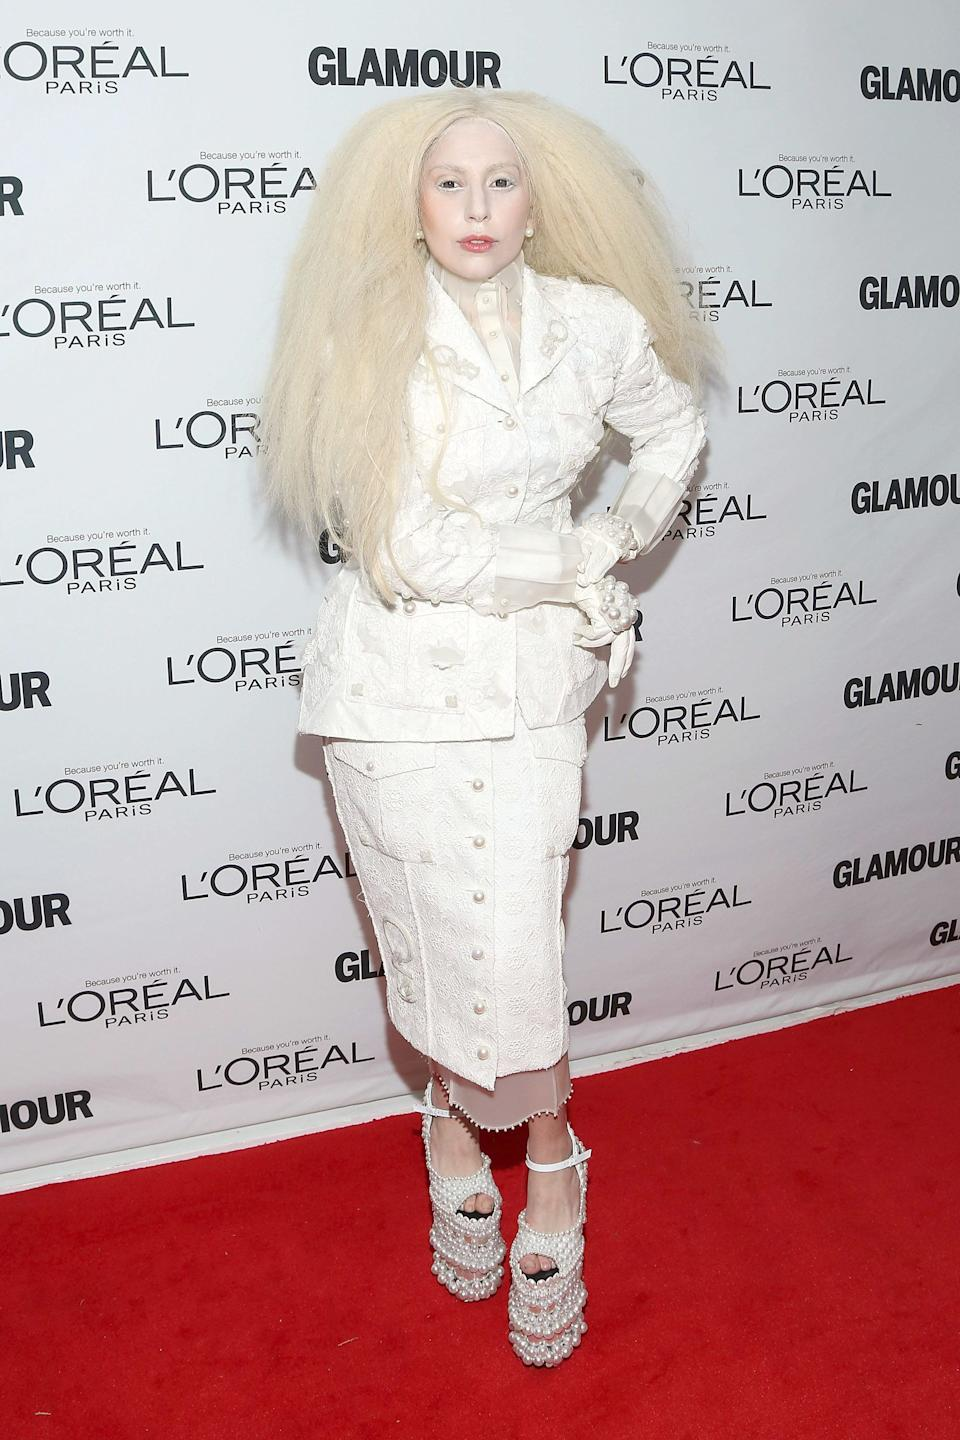 Gaga wears a white ensemble by Thom Browne, complete with powdered face and platinum wig, for the Glamour Women of the Year gala on Nov. 11, 2013.